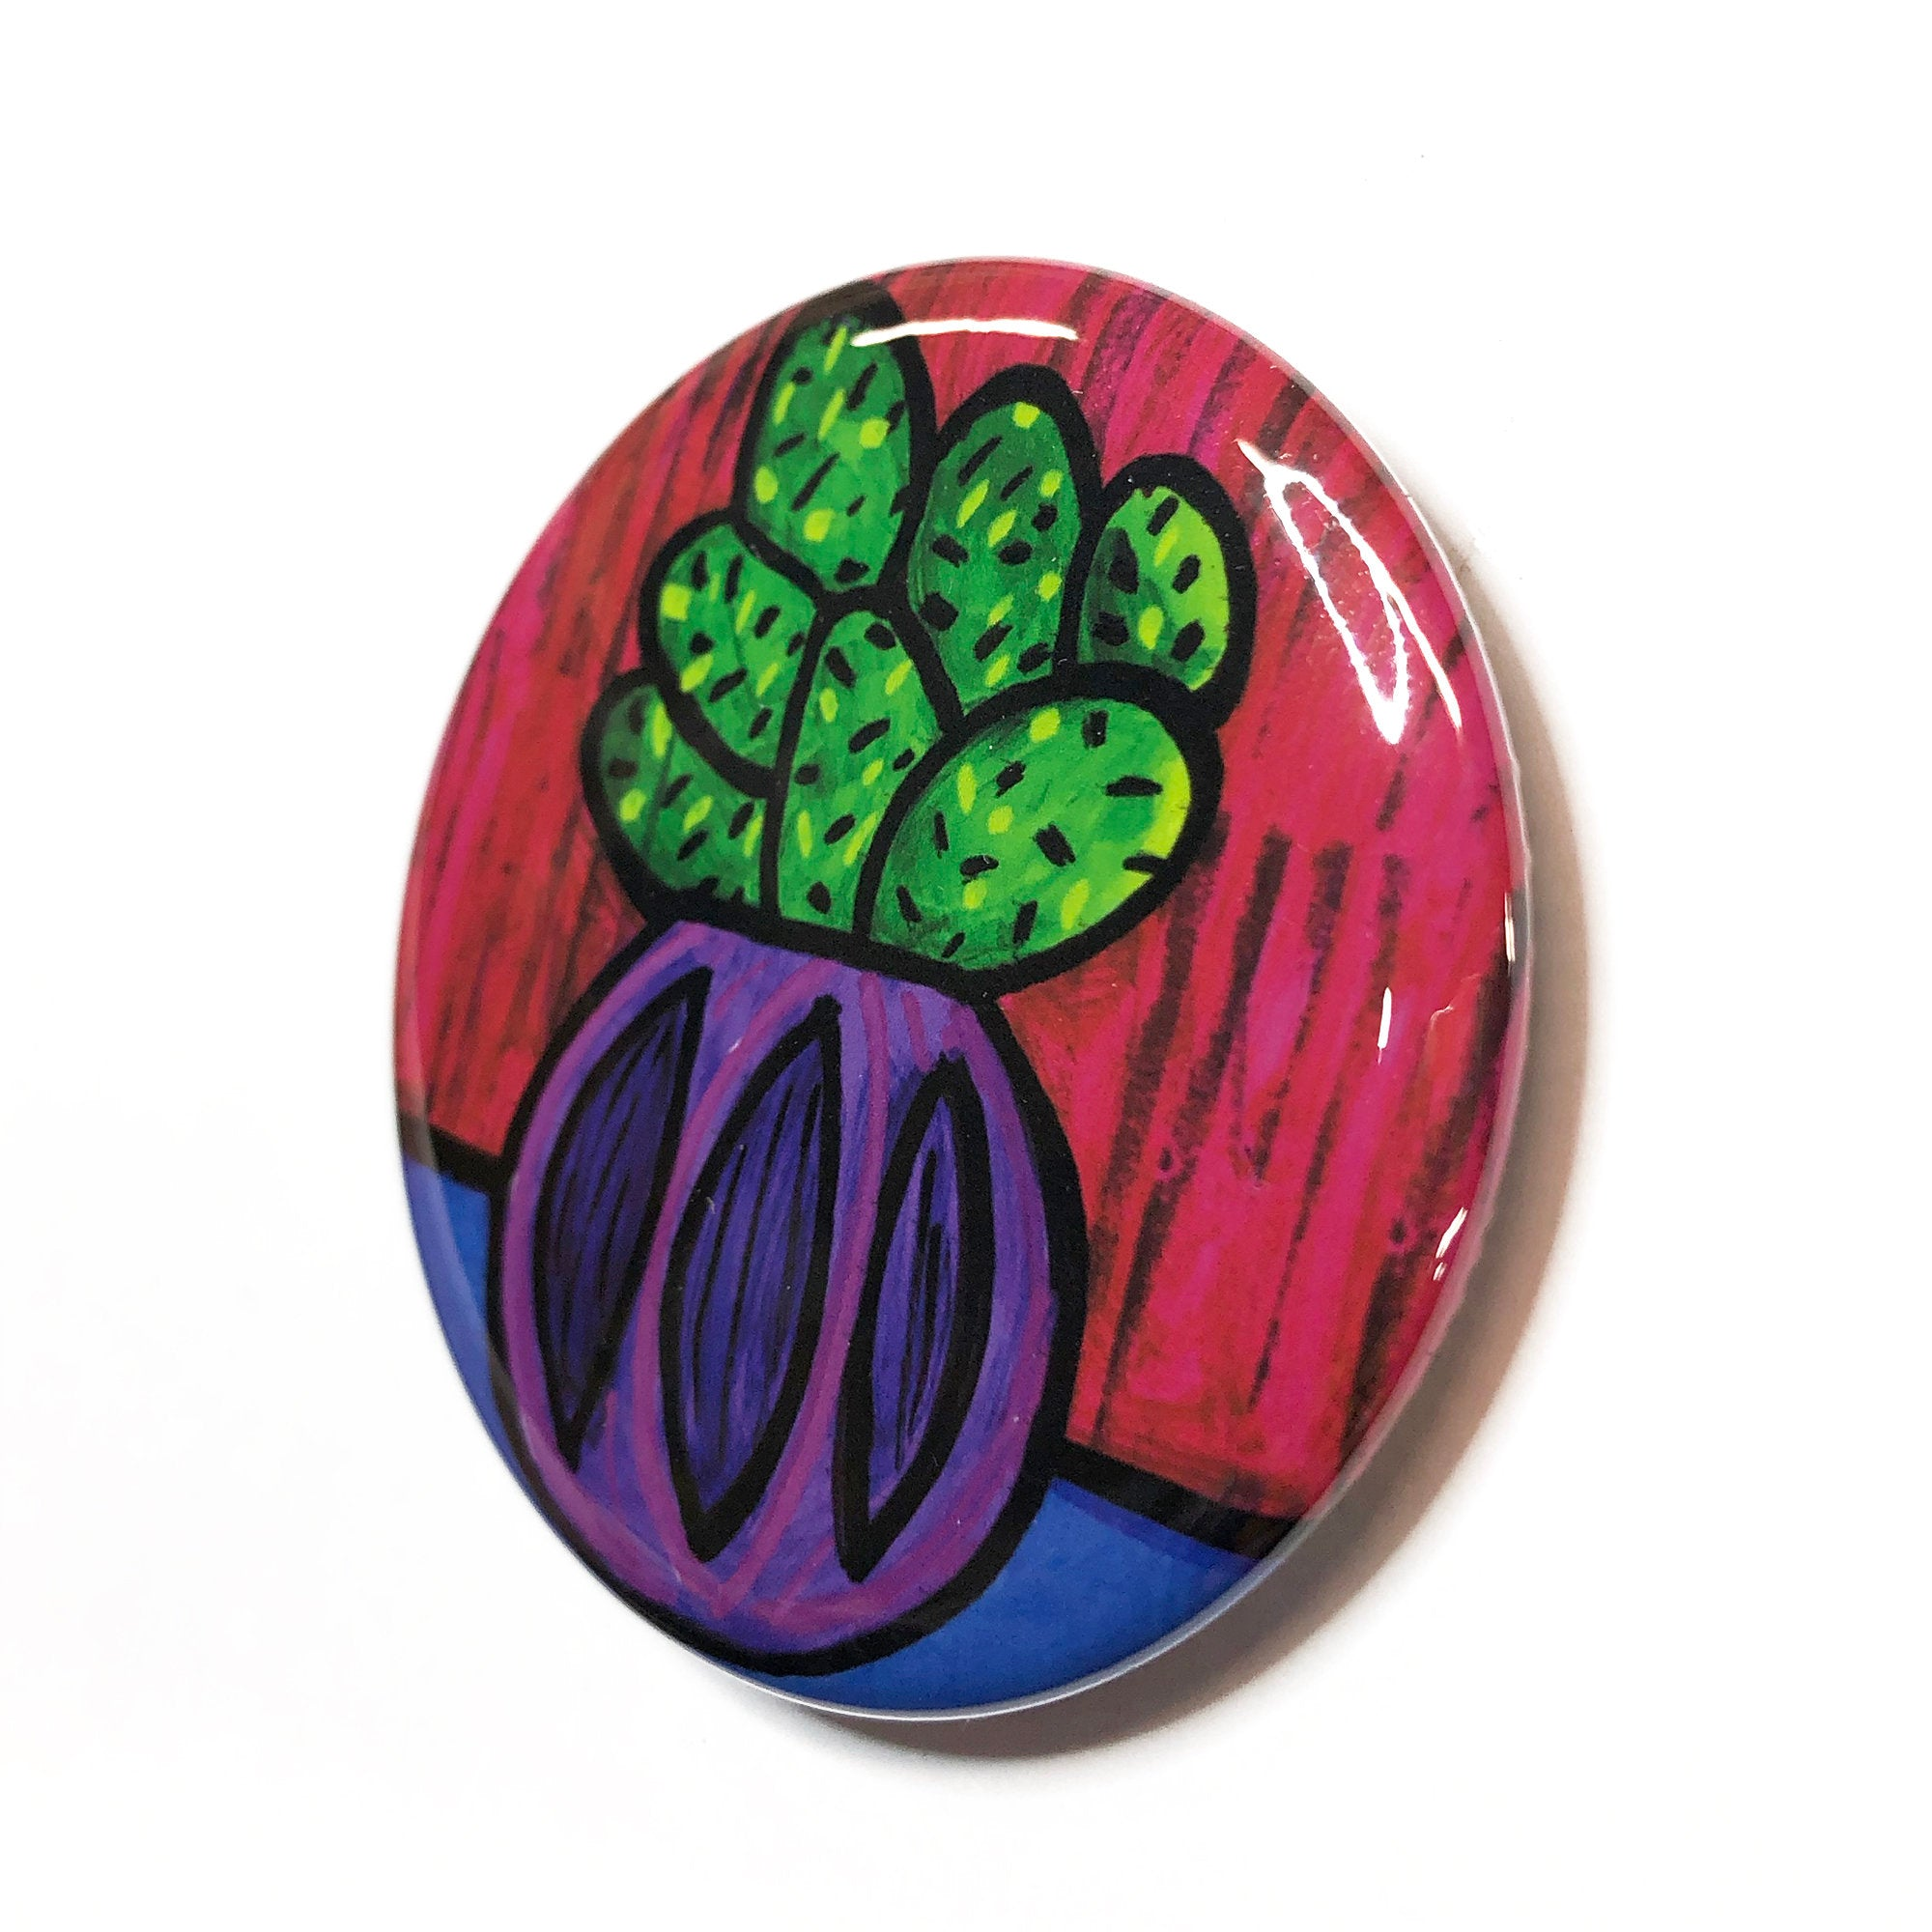 Colorful Cactus Magnet, Pin Back Button, or Pocket Mirror - Succulent Fridge Magnet, Pinback Badge, or Purse Mirror - Party Favor, Gift